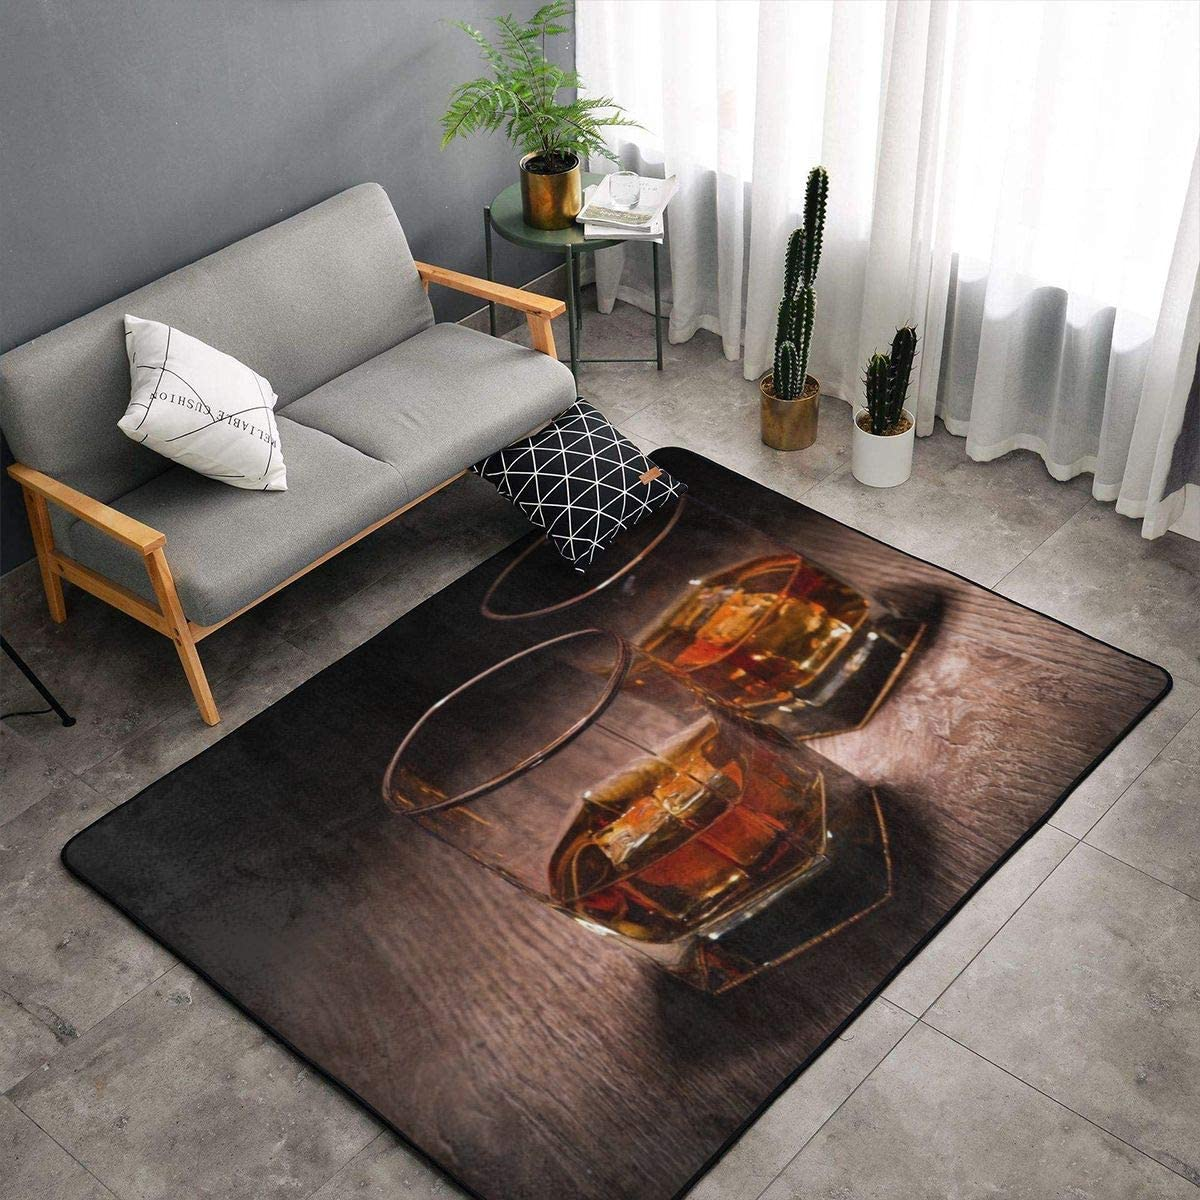 Indoor Modern Soft Floor Area Rugs Fluffy Machine Washable Carpets 60 X 39 Whiskey Suitable for Children Bedroom, Office, Coffee Table, Balcony Home Decor Rugs